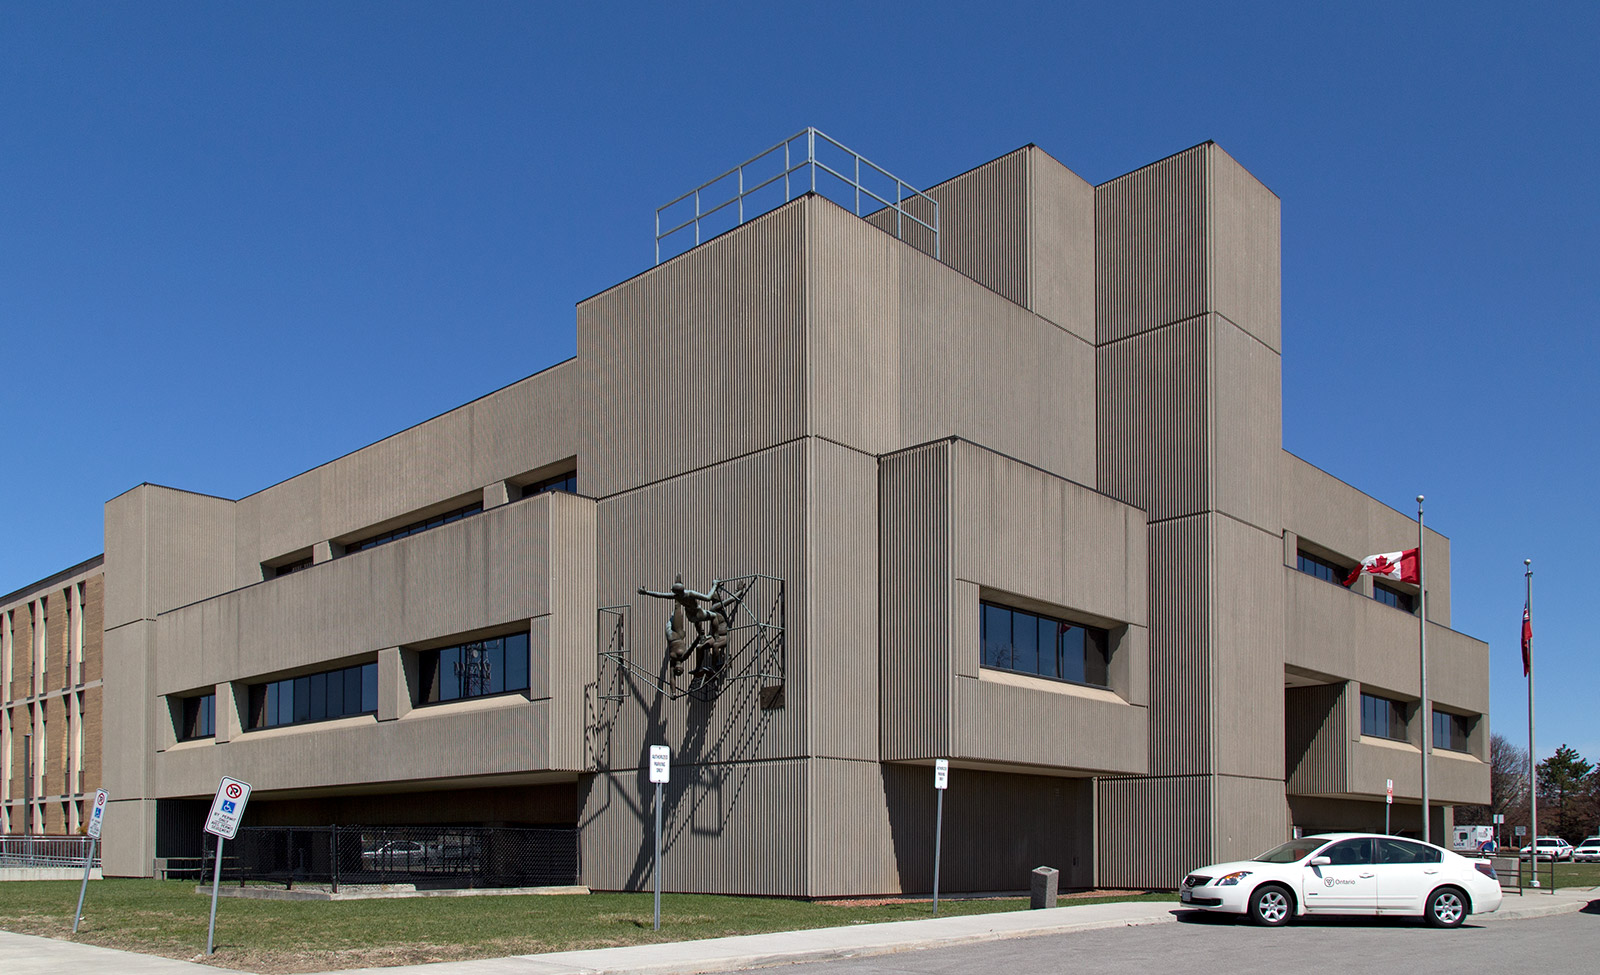 20140426. The Ontario Ministry of the Attorney General's Brutalist Milton Courthouse.